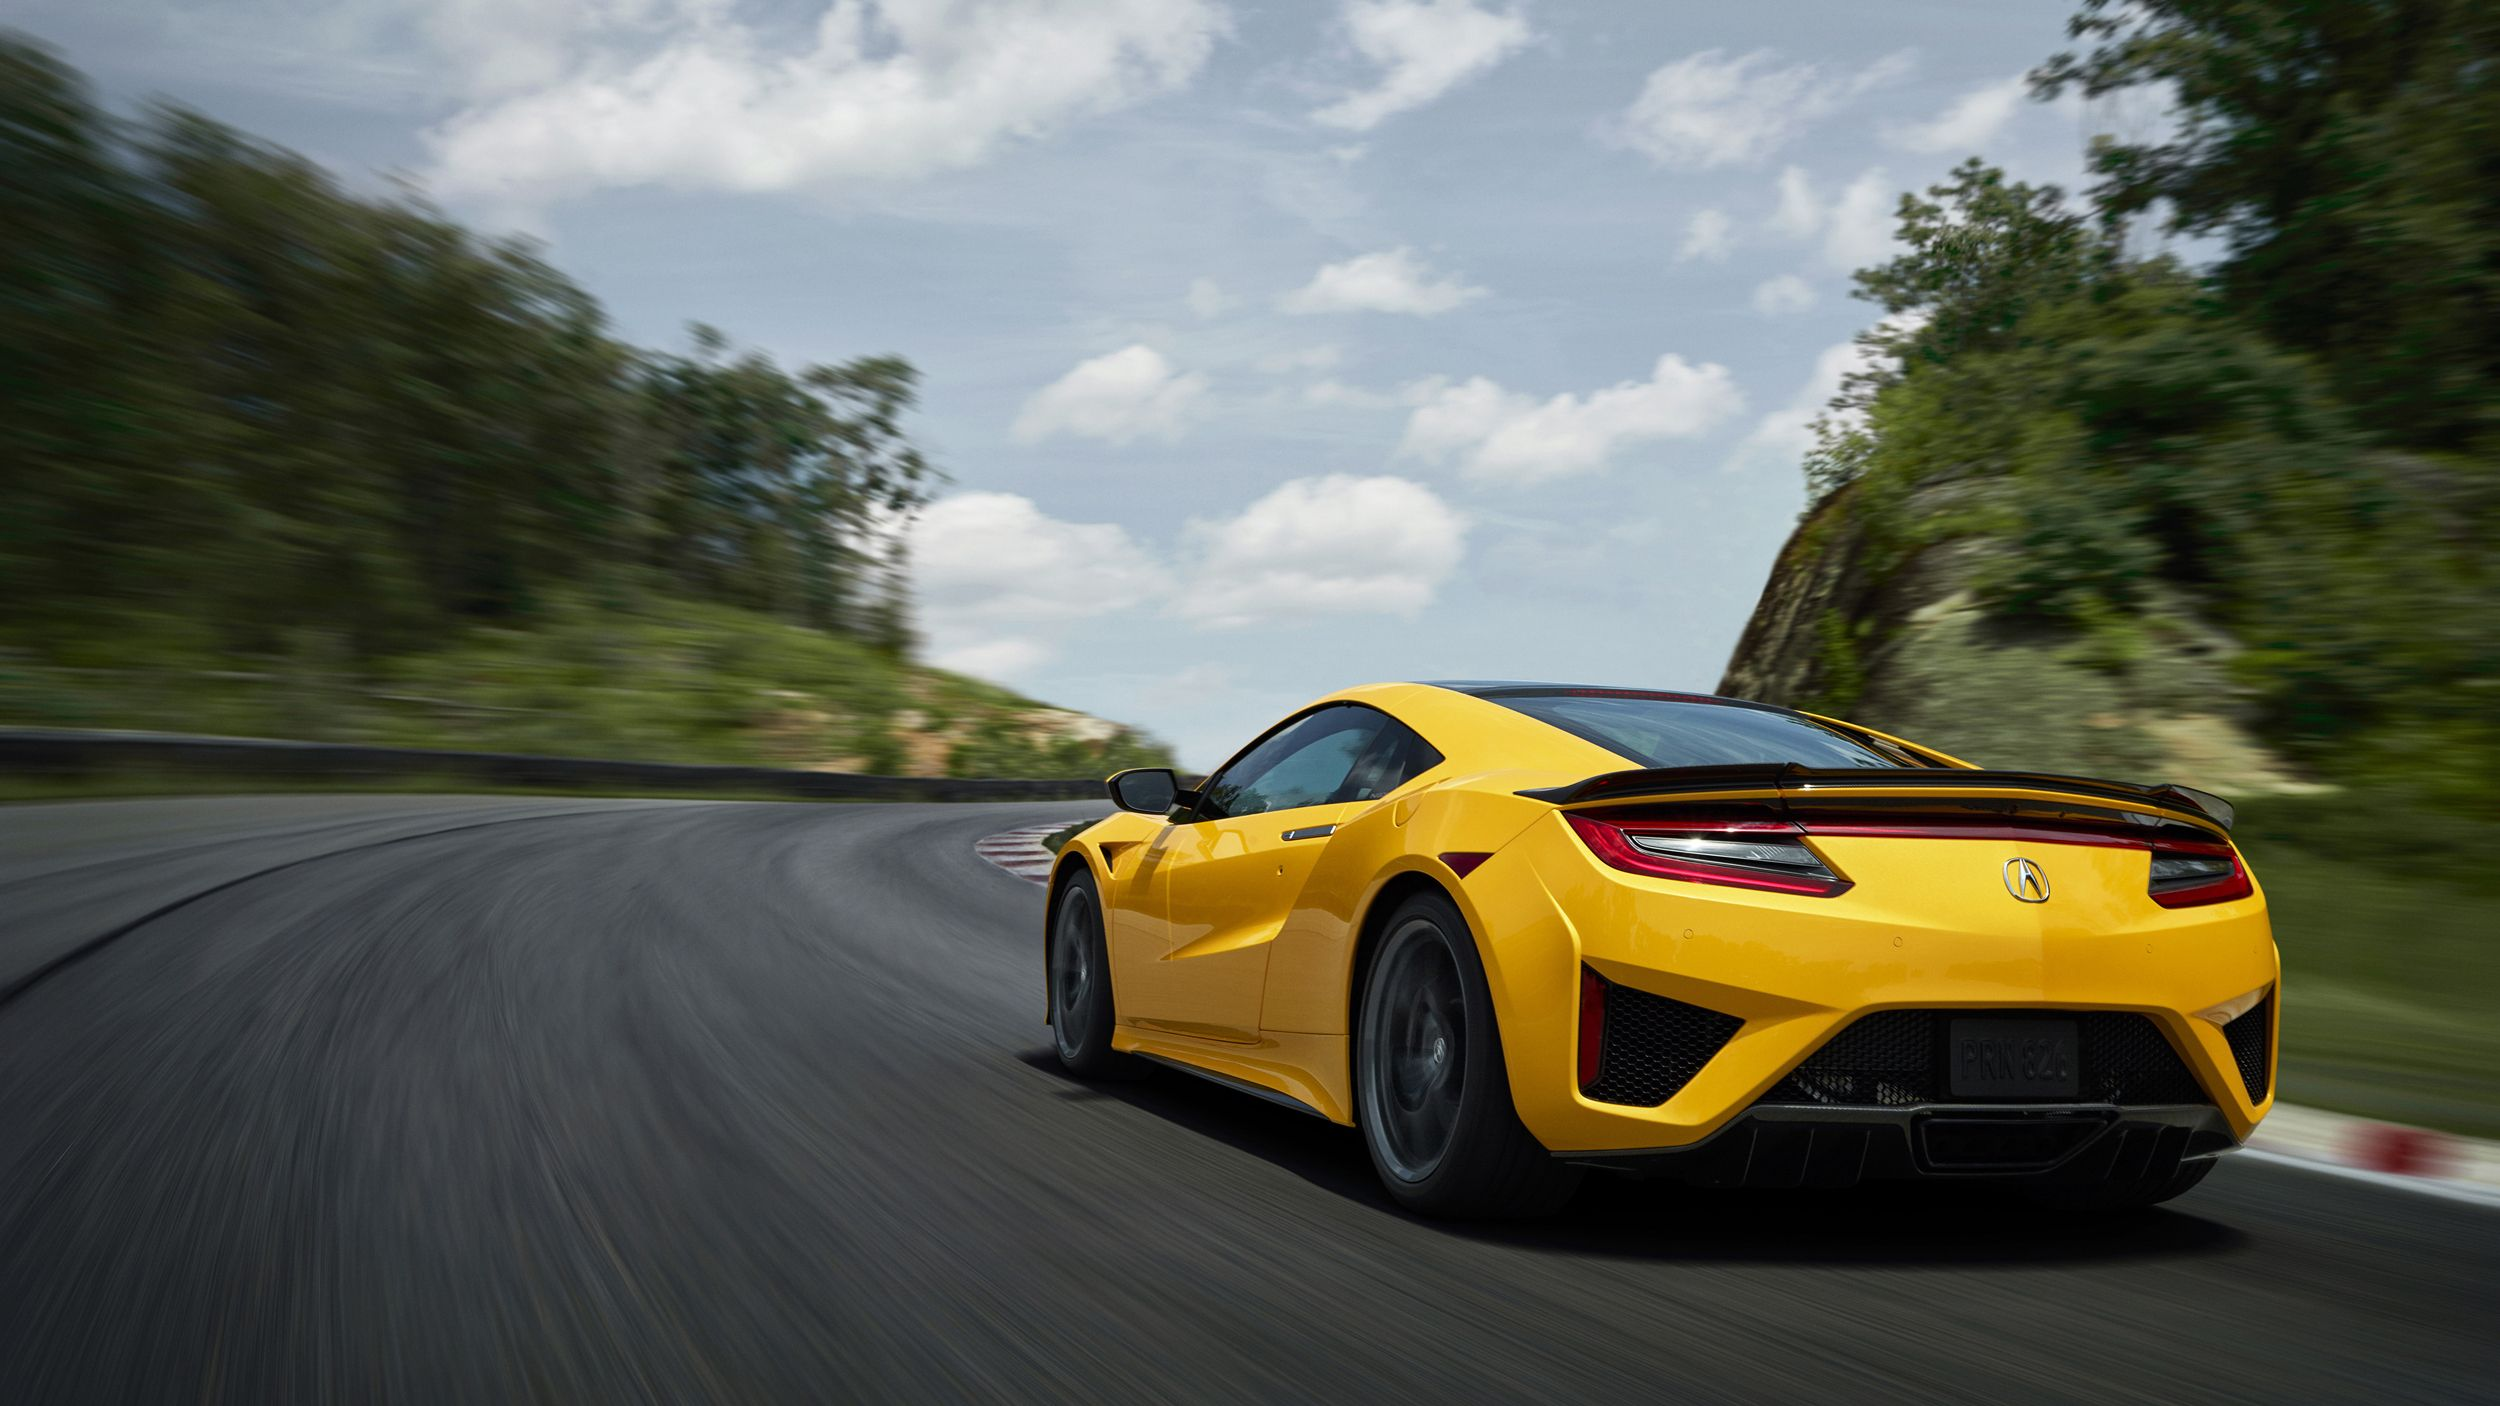 2020 Acura NSX Indy Yellow Pearl Acura nsx, Nsx, Cool